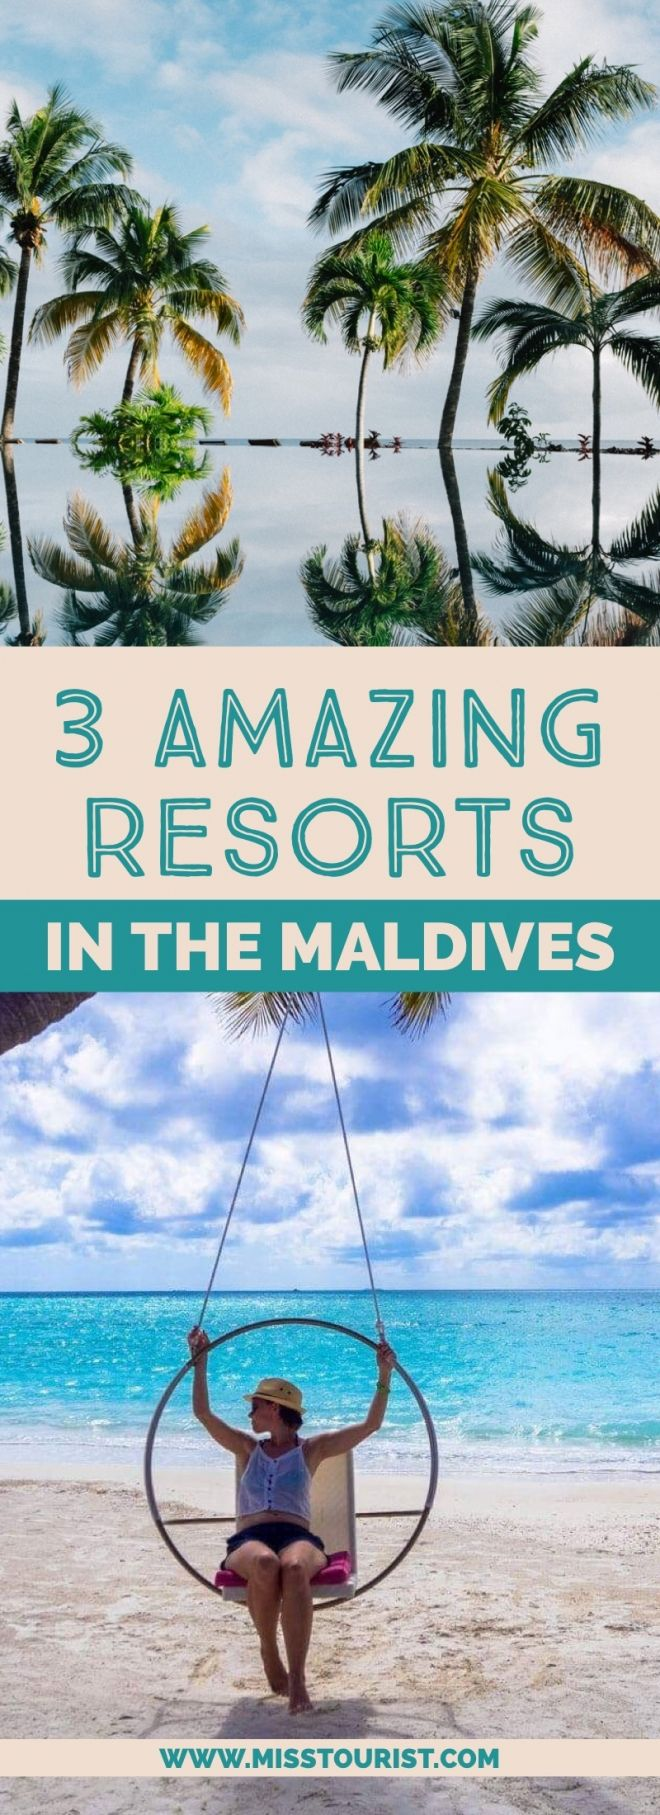 During my 2 week stay in the Maldives, I had a chance to stay in three resorts. Each of them was amazing, but I noticed all three were very different from each other. Every one of them had a different vibe, crowd, price range, style, service and many more details. Today I want to present them to you and help you choose the best one! Honeymoon, Resort, Island, Pictures, Things To Do, Water Villa, Beaches, Budget, Travel, All Inclusive, Wedding, Vacation, Diving, Bungalow, Food, Hotel, Holiday